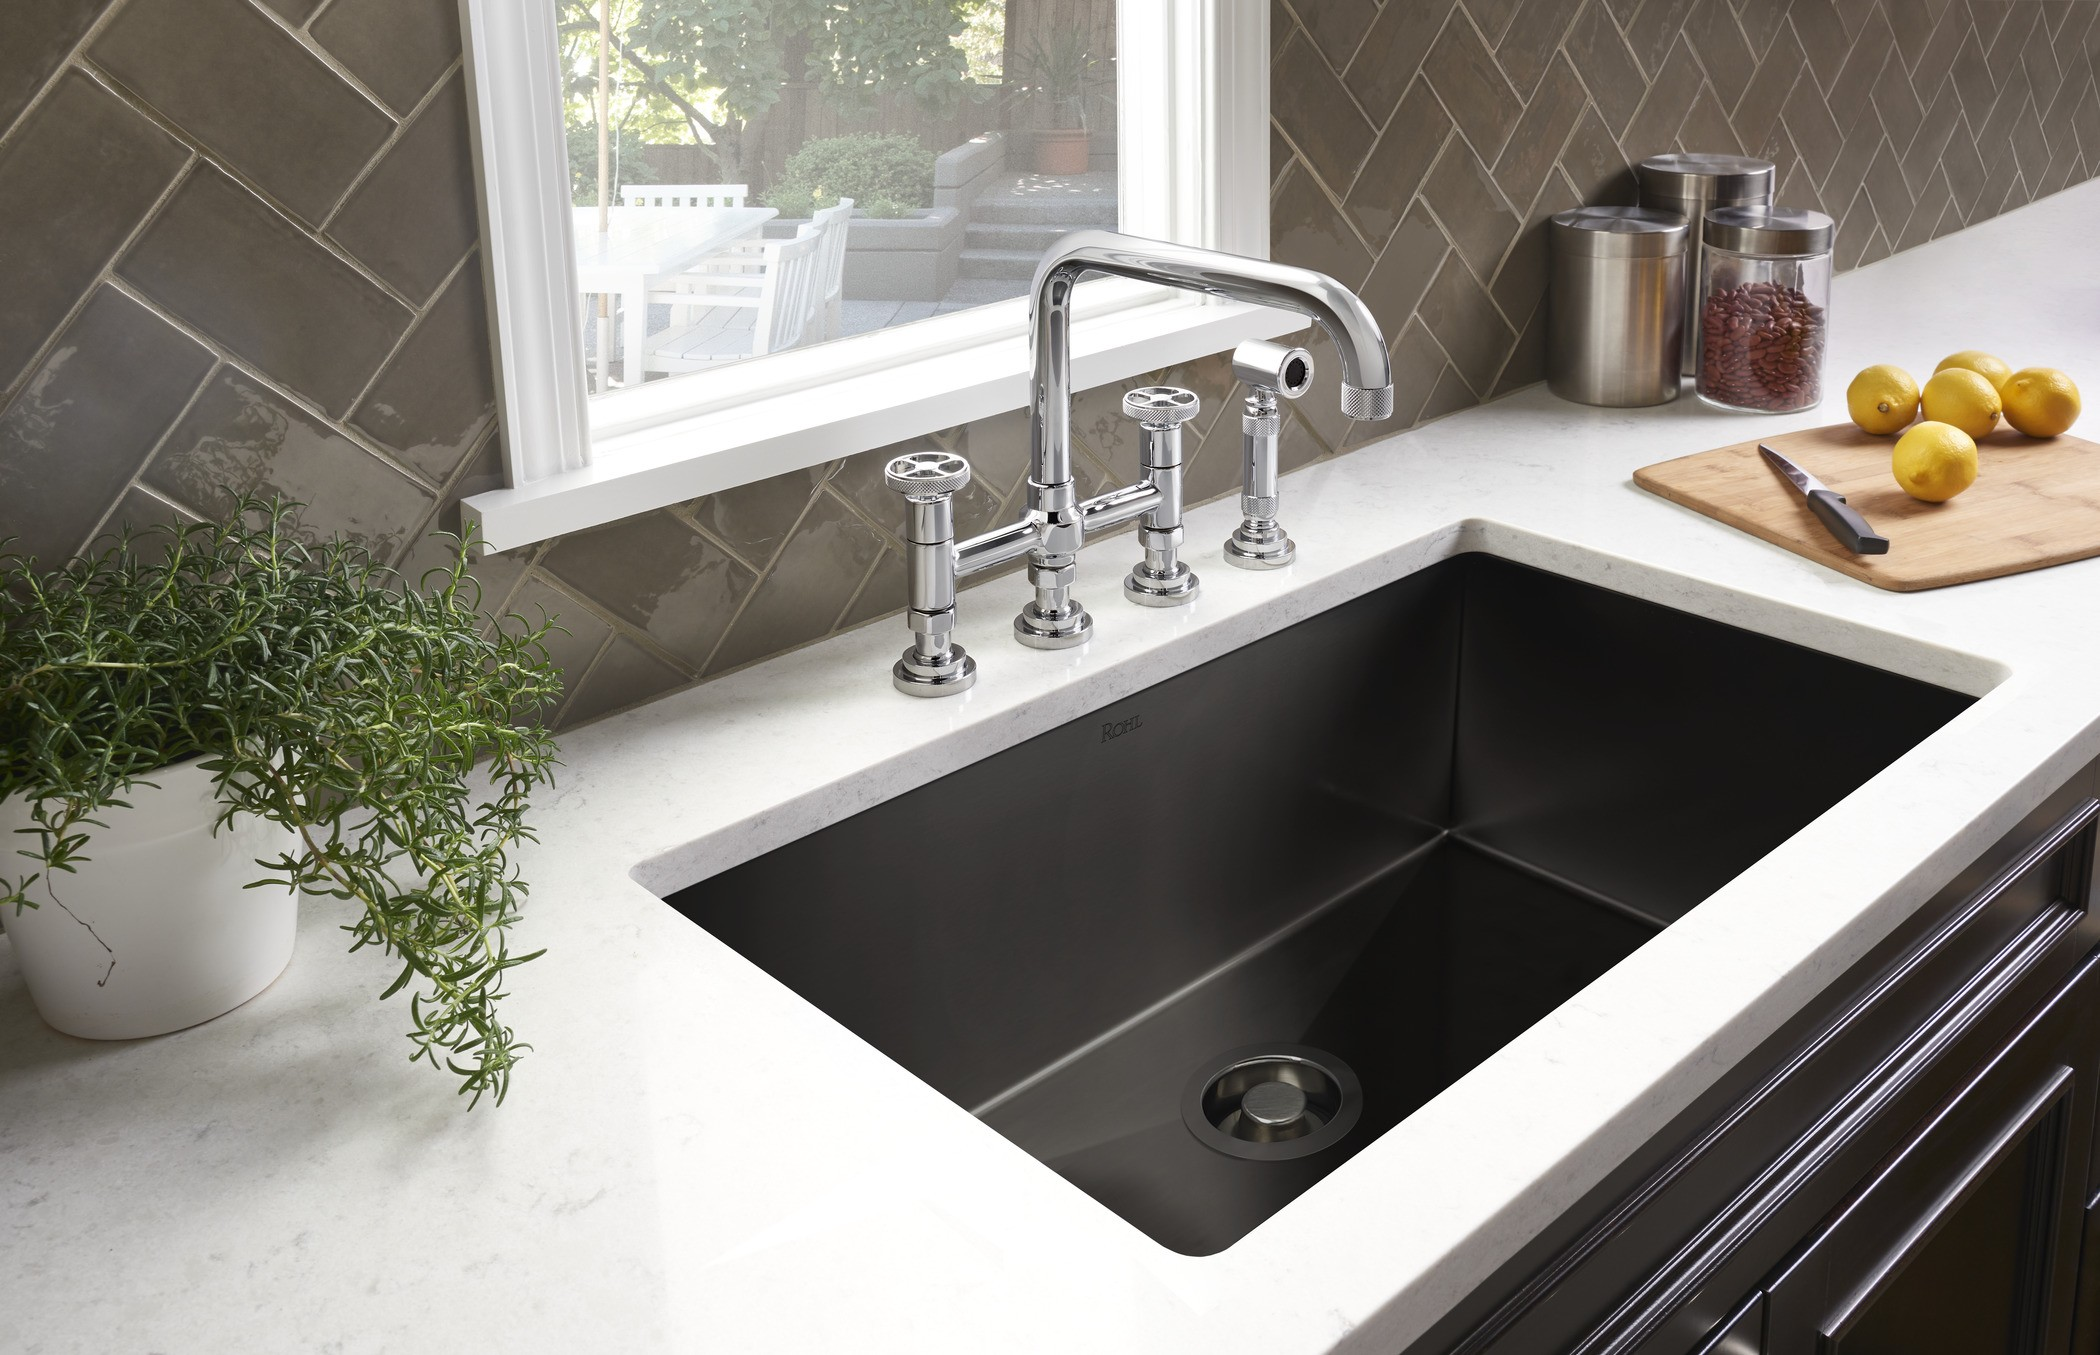 Rohl sink